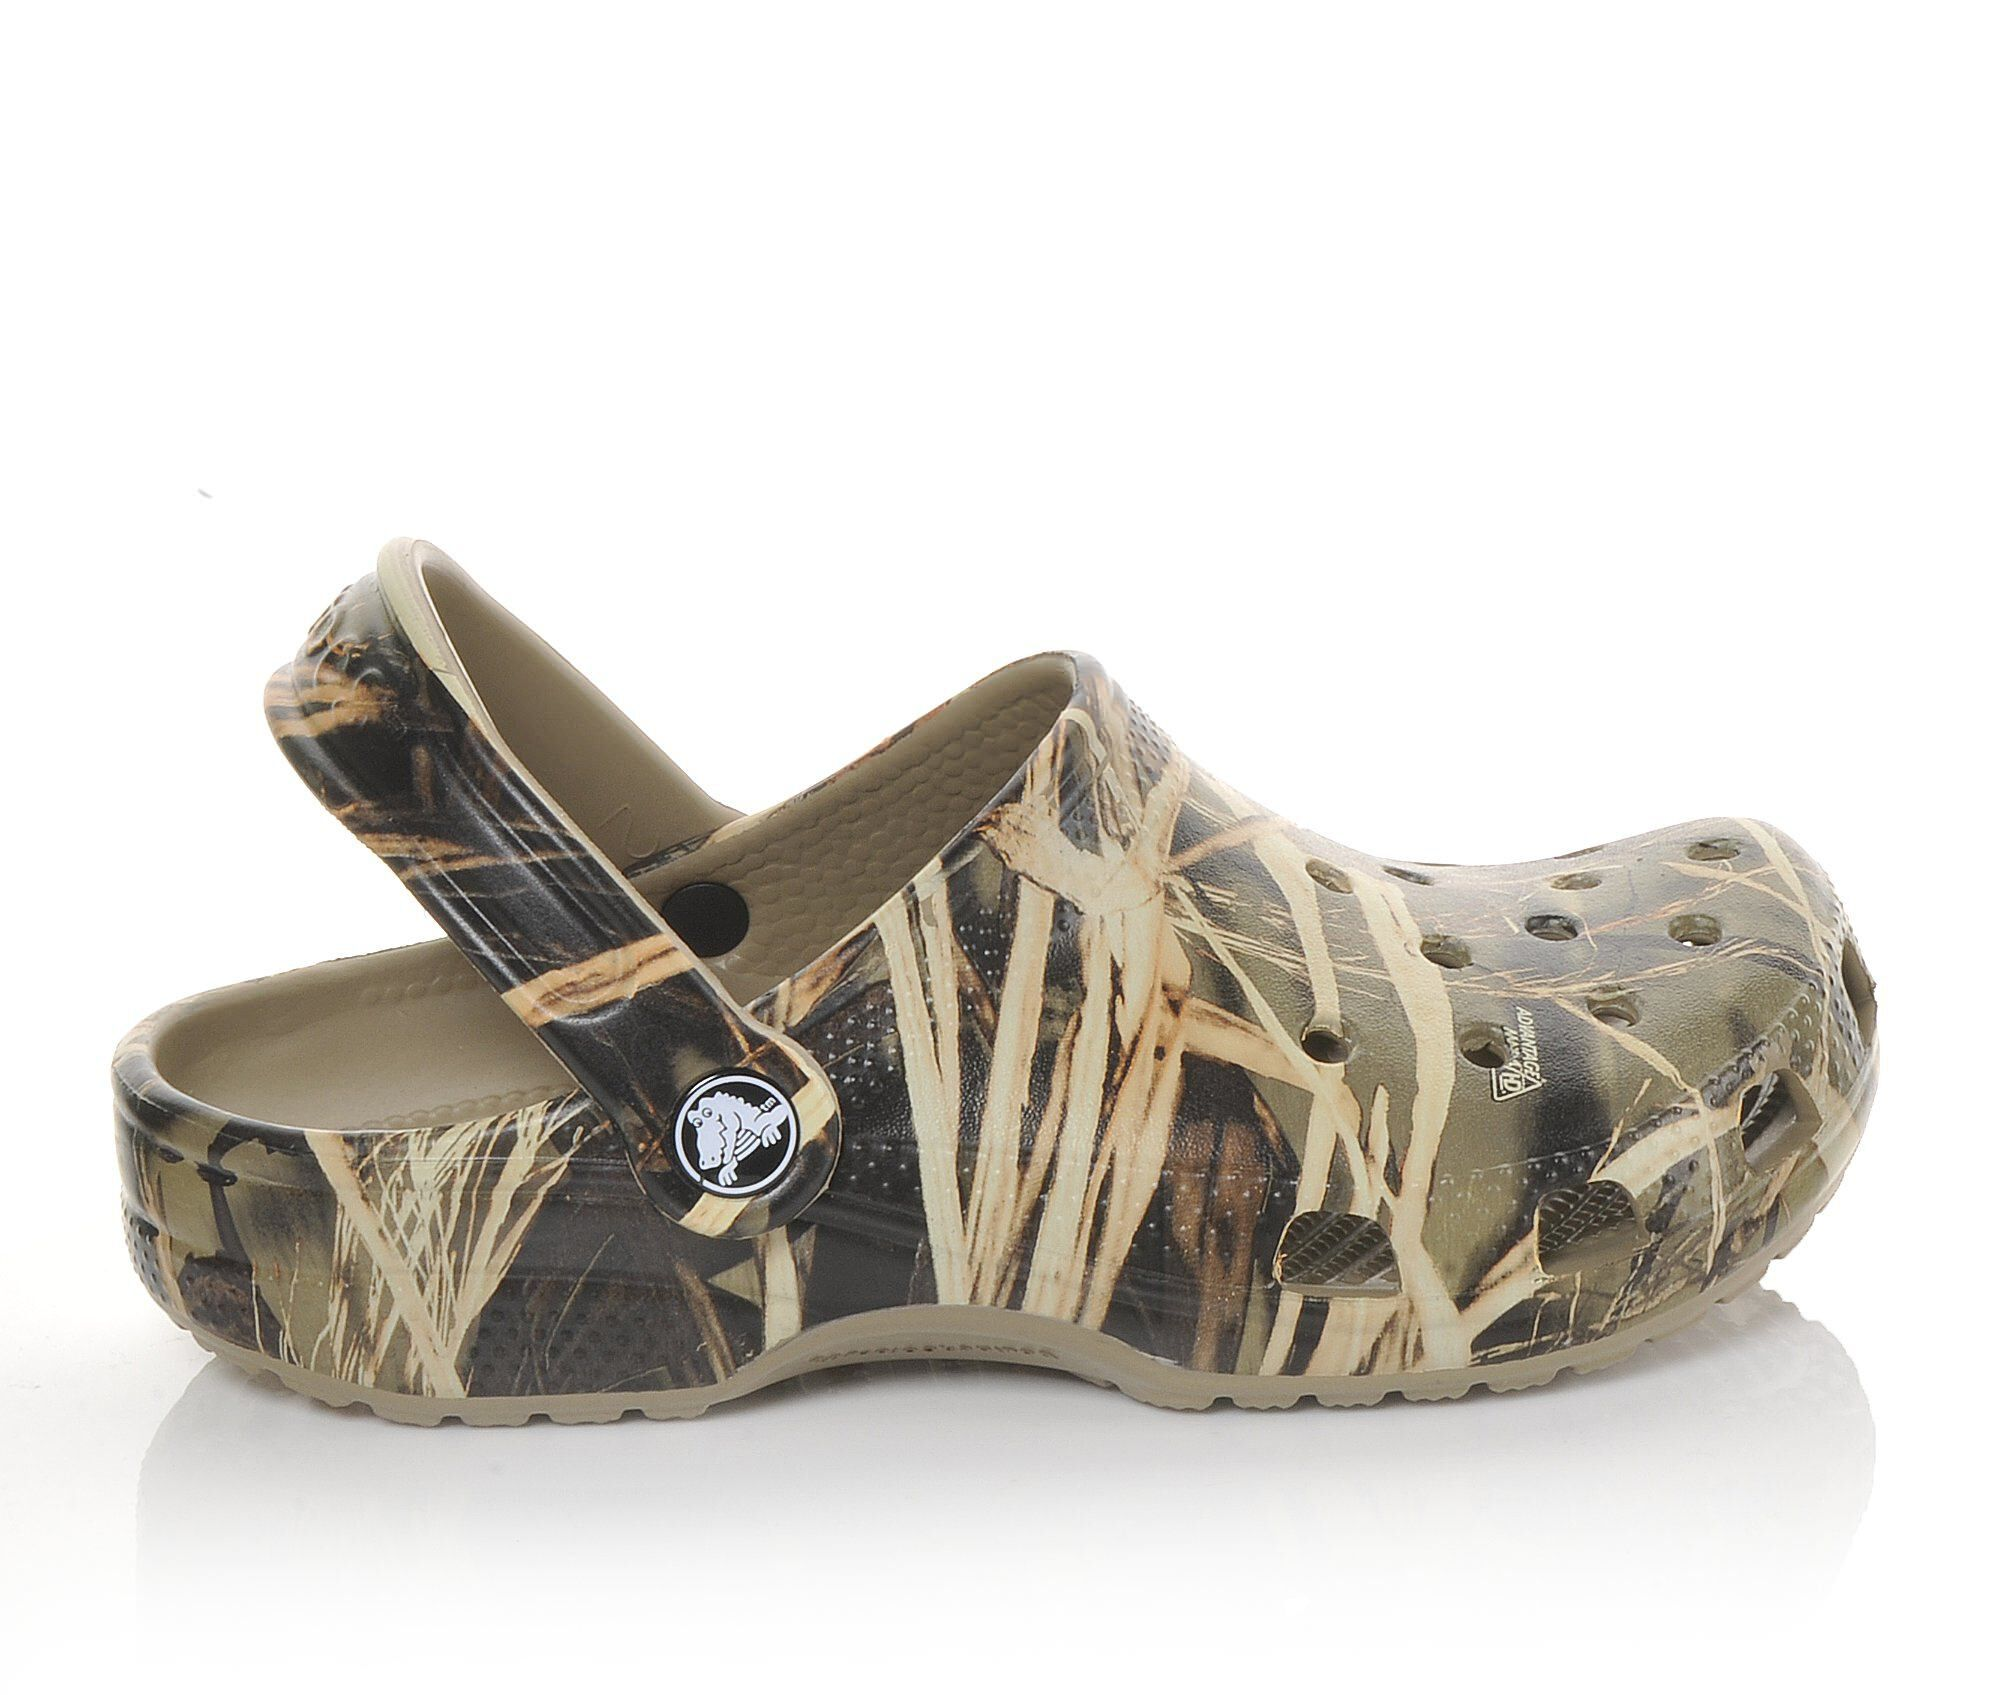 Images Boys Crocs Classic RealTree Kids Clogs